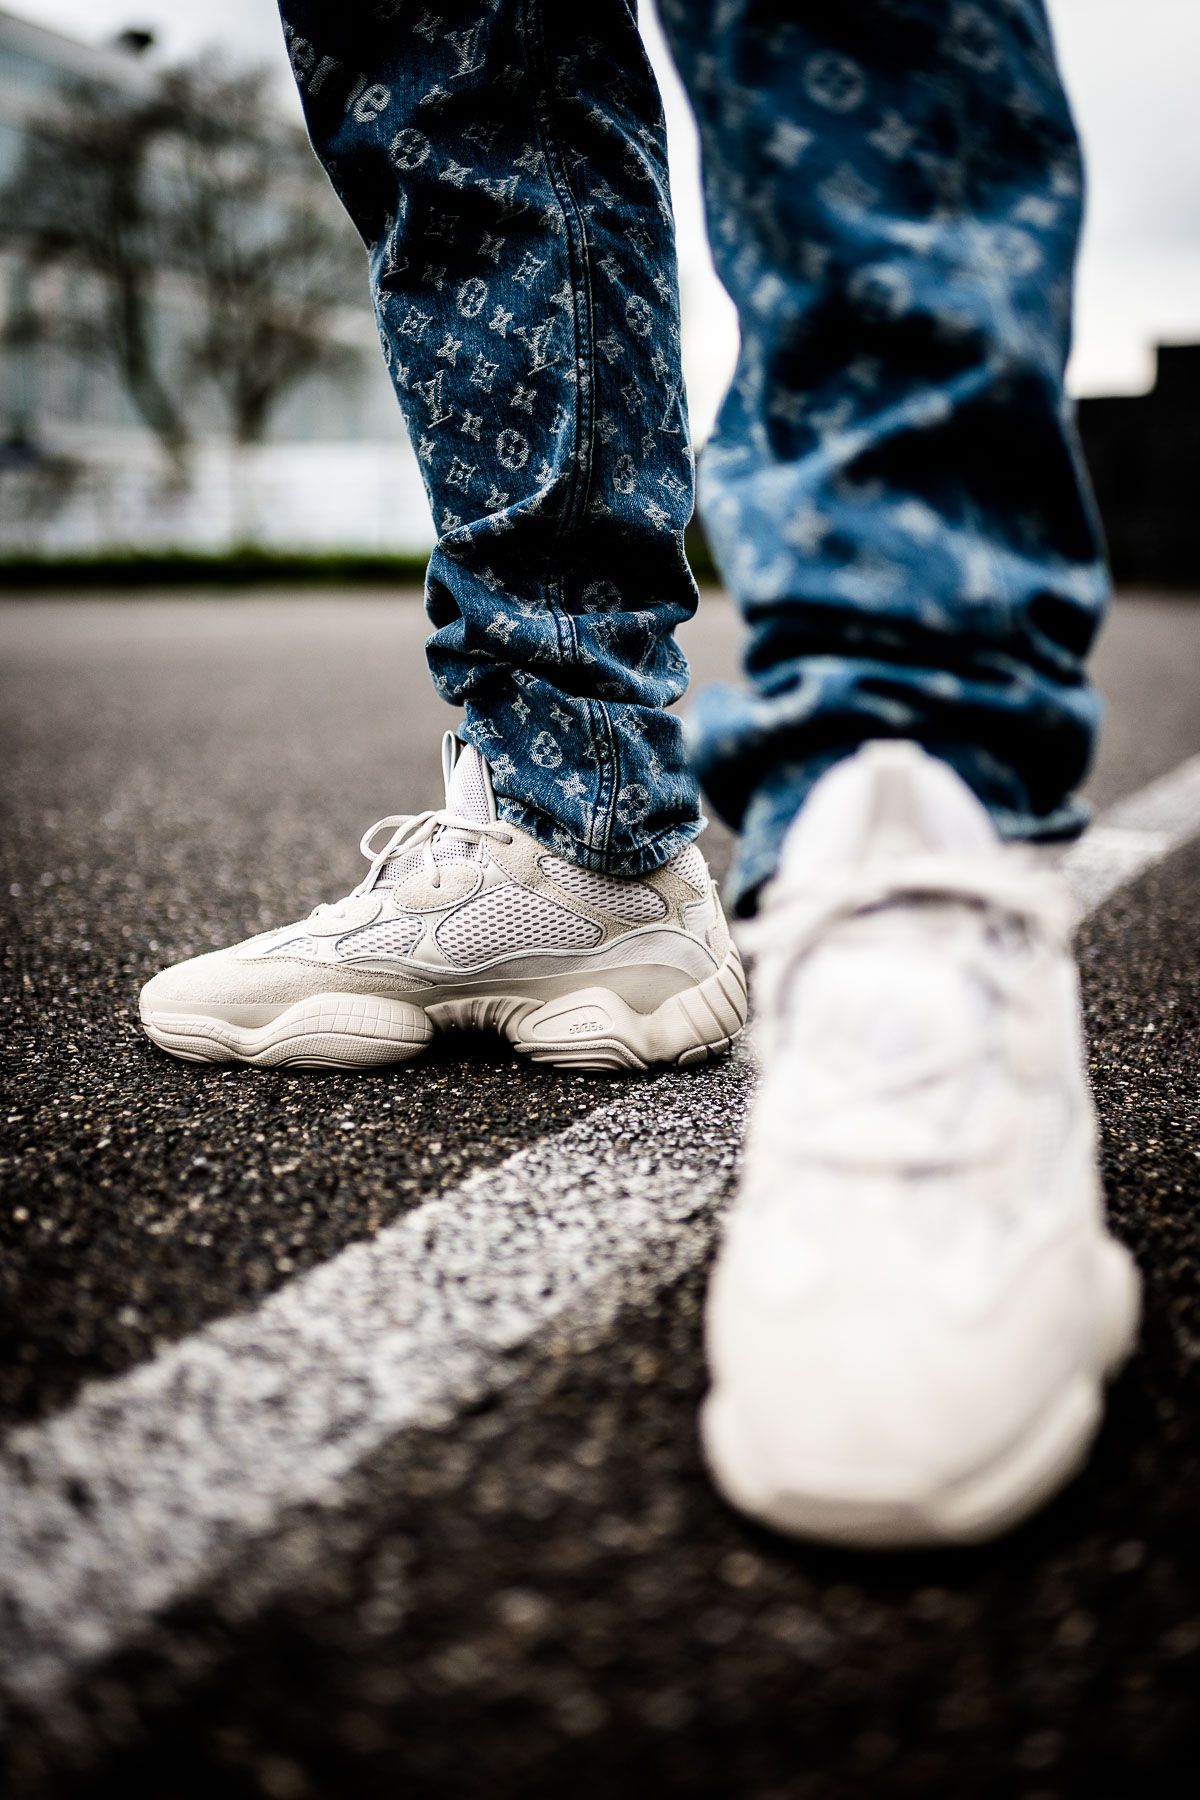 reputable site 99ba0 5a937 adidas Yeezy 500 Blush - on feet | Dead Stock